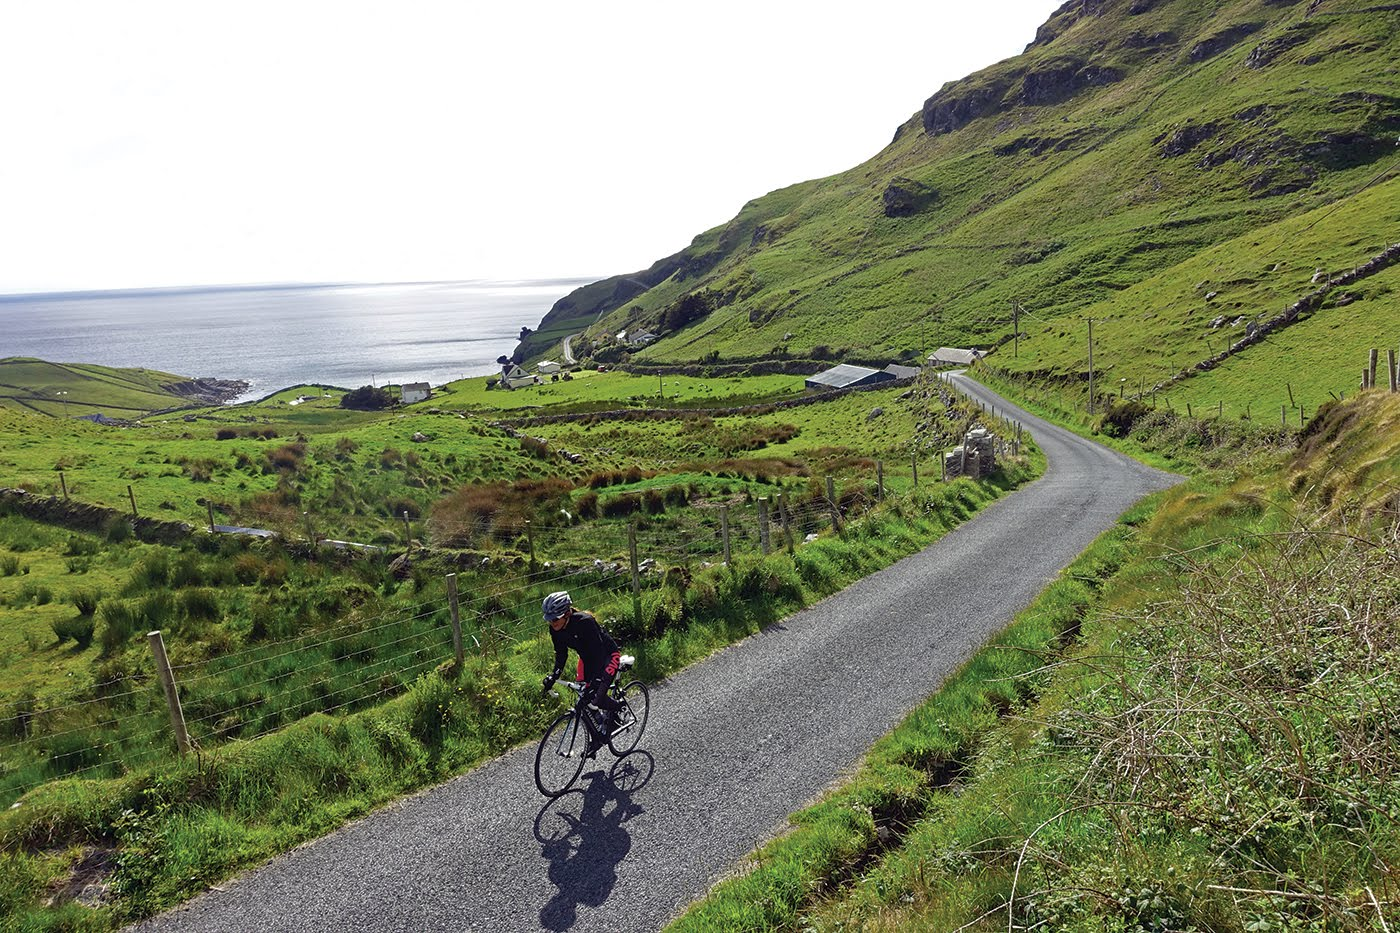 Cyclist in Ireland on the Wild Atlantic Way